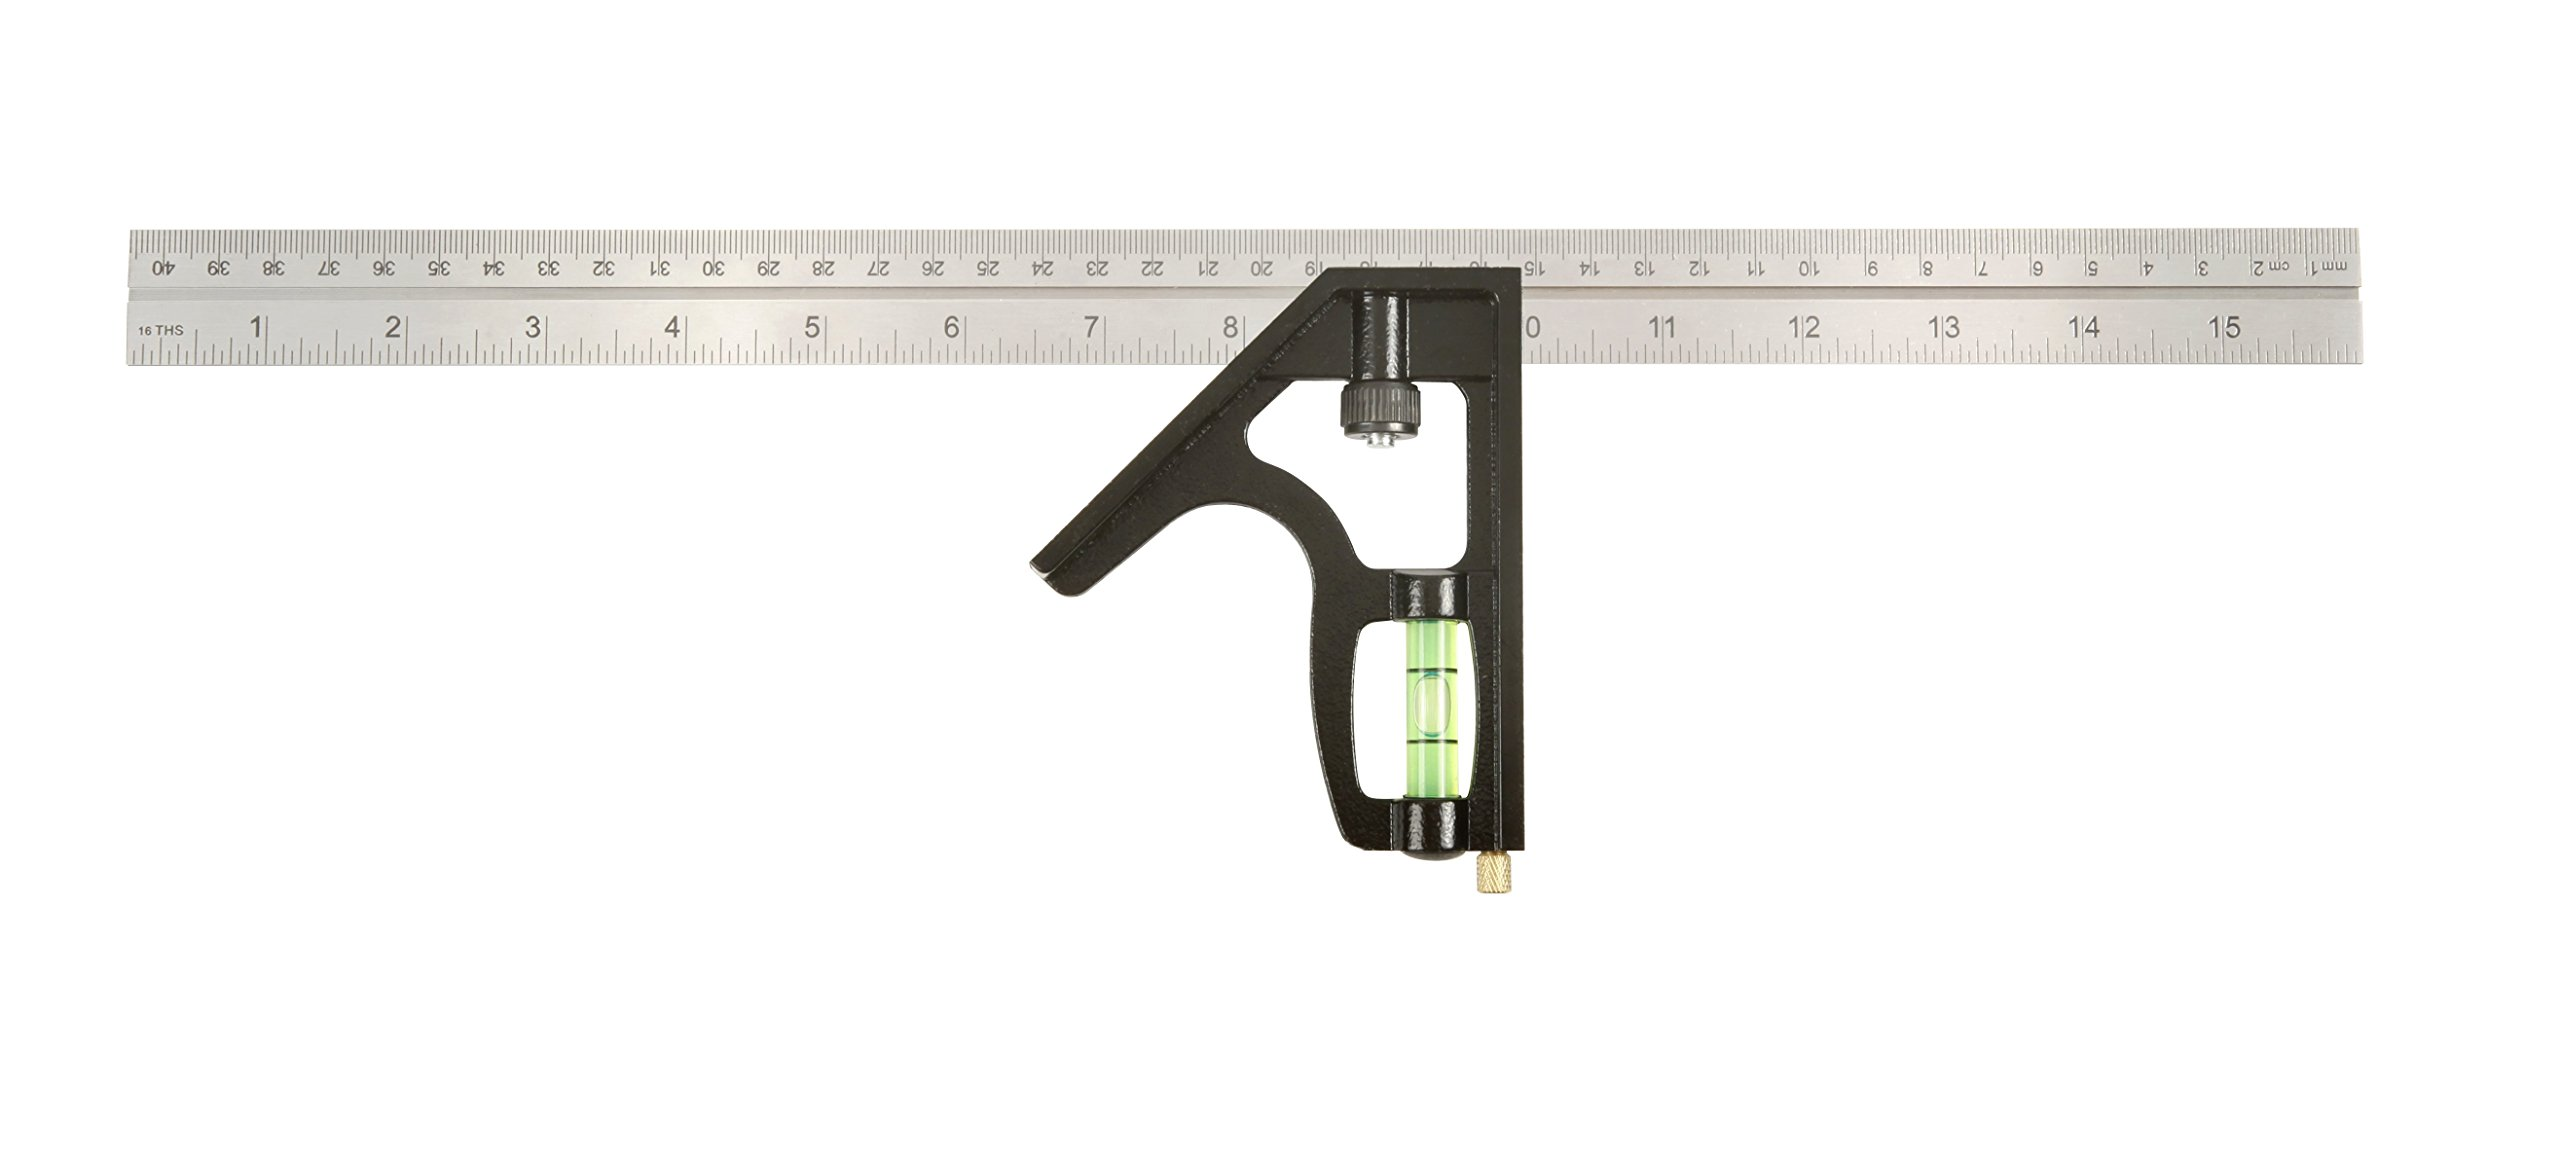 Johnson Level & Tool 420EM-S Heavy Duty Professional Inch/Metric Stainless Steel Combination Square, 16''